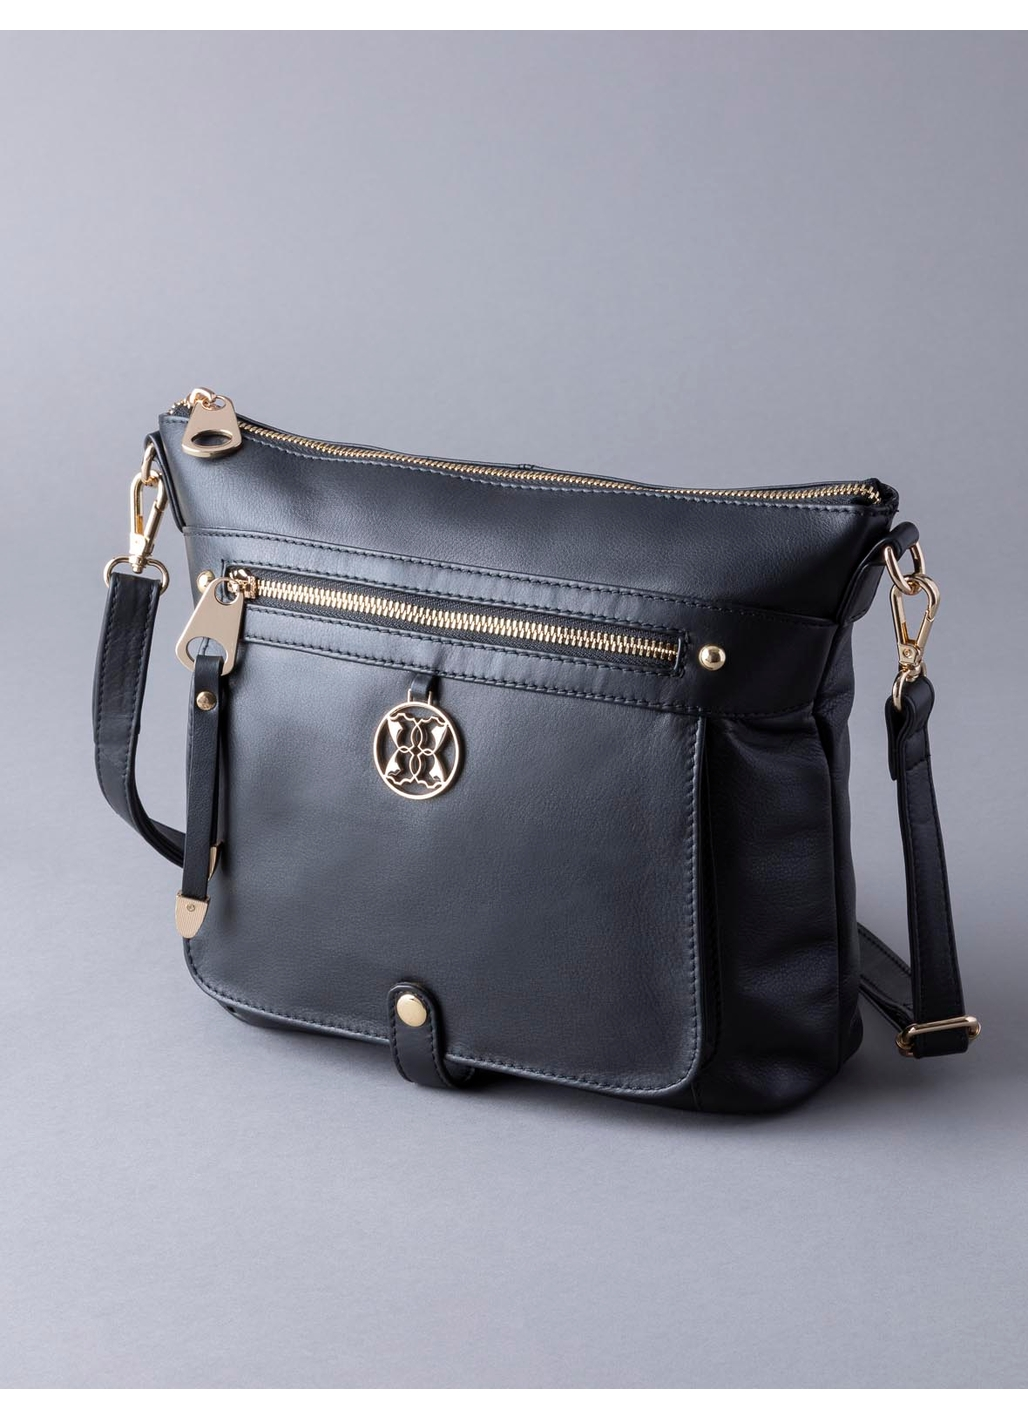 Cartmel II Leather Cross Body Bag in Black